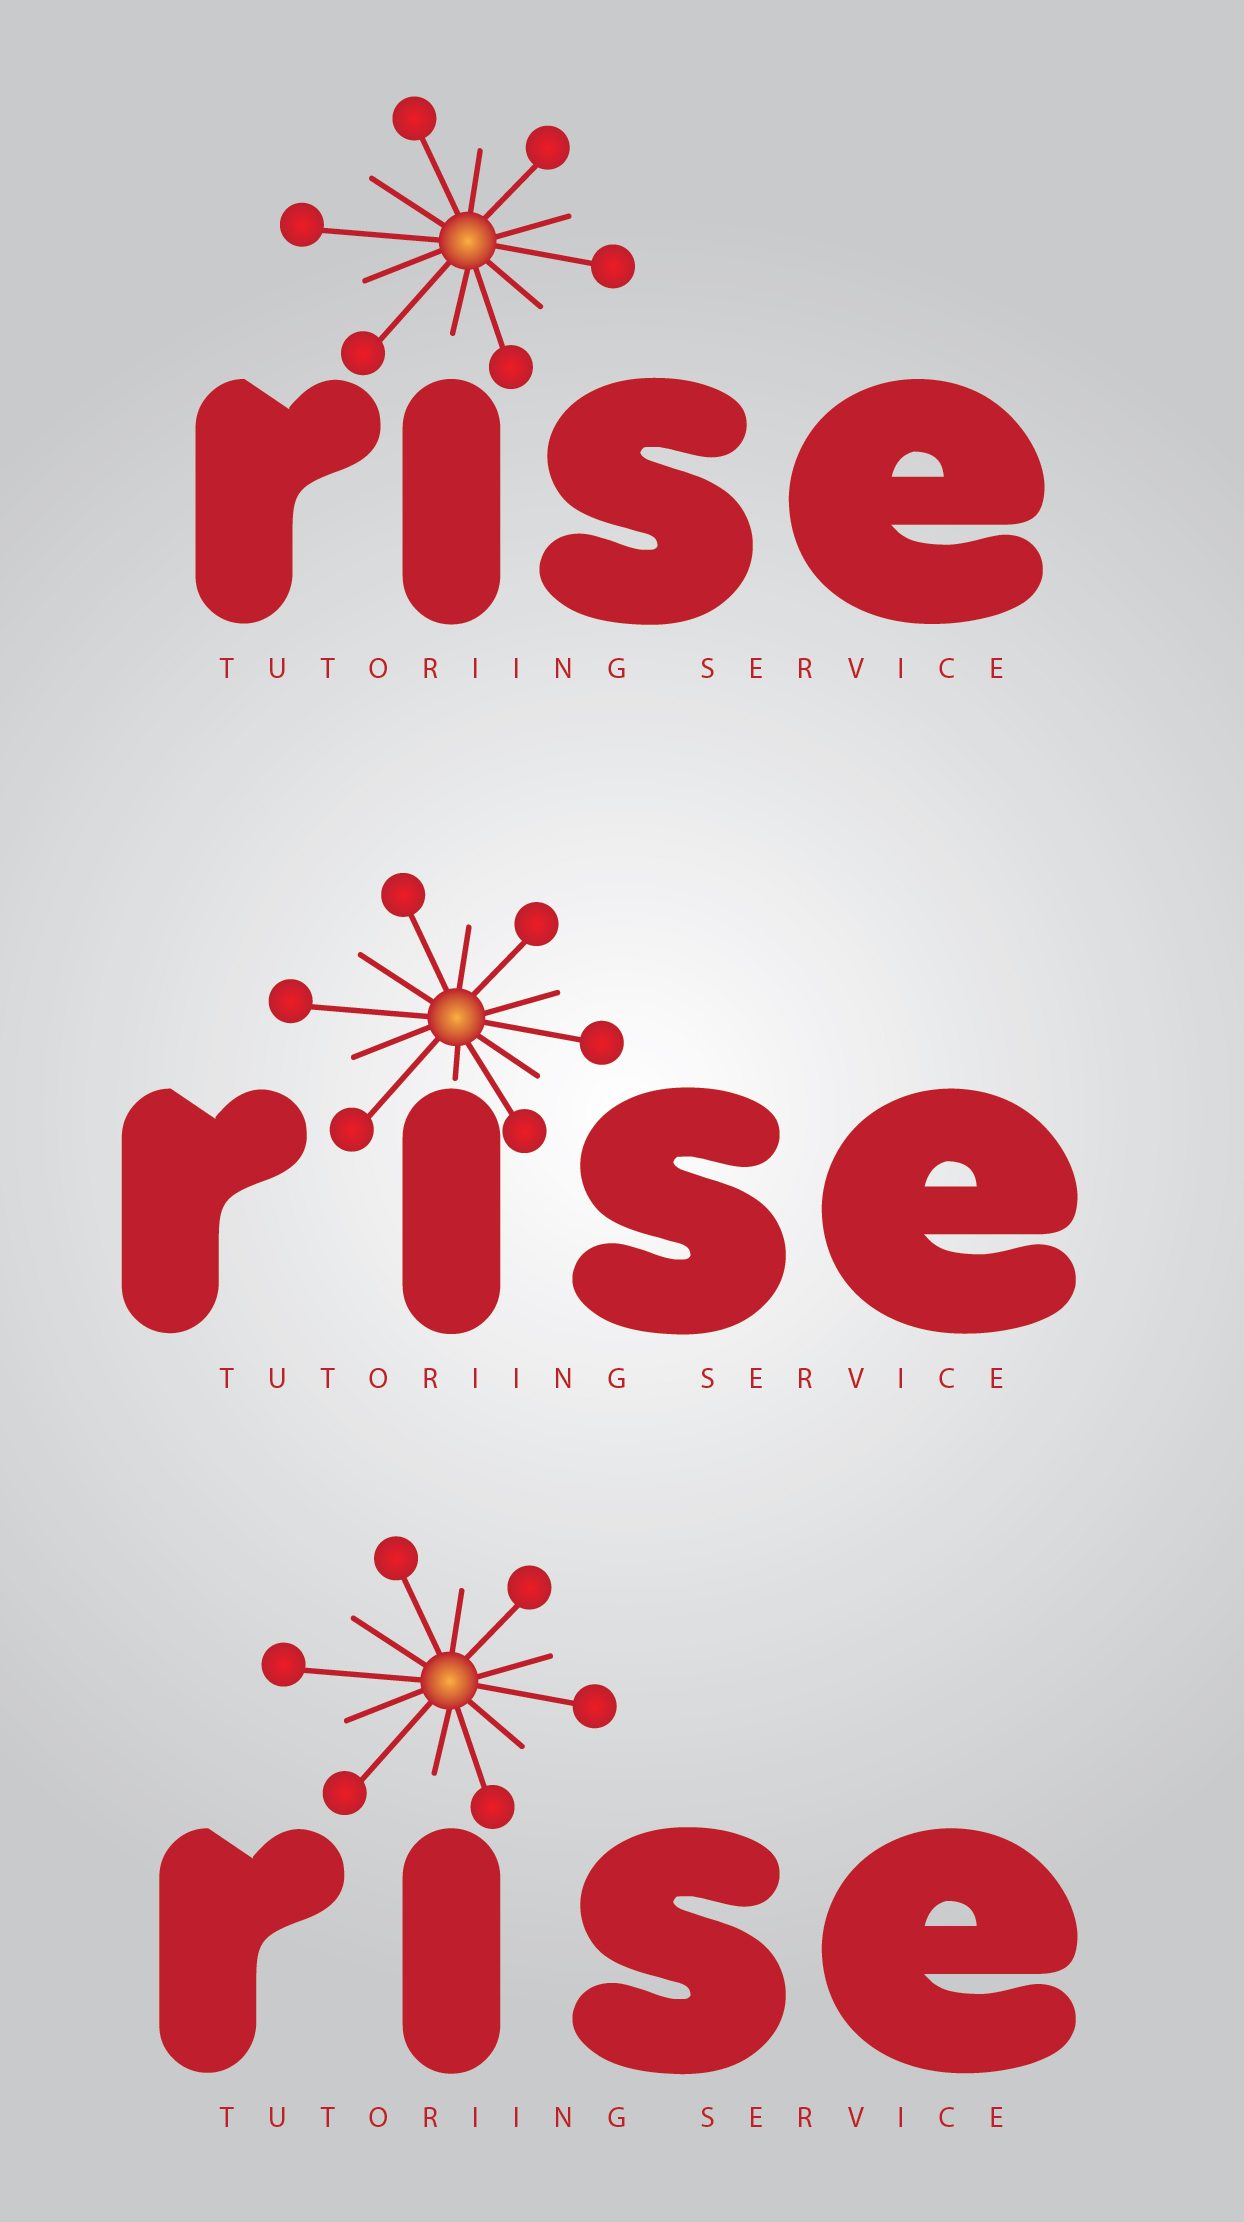 Logo Design by mediaproductionart - Entry No. 155 in the Logo Design Contest Imaginative Logo Design for Rise Tutoring Service.